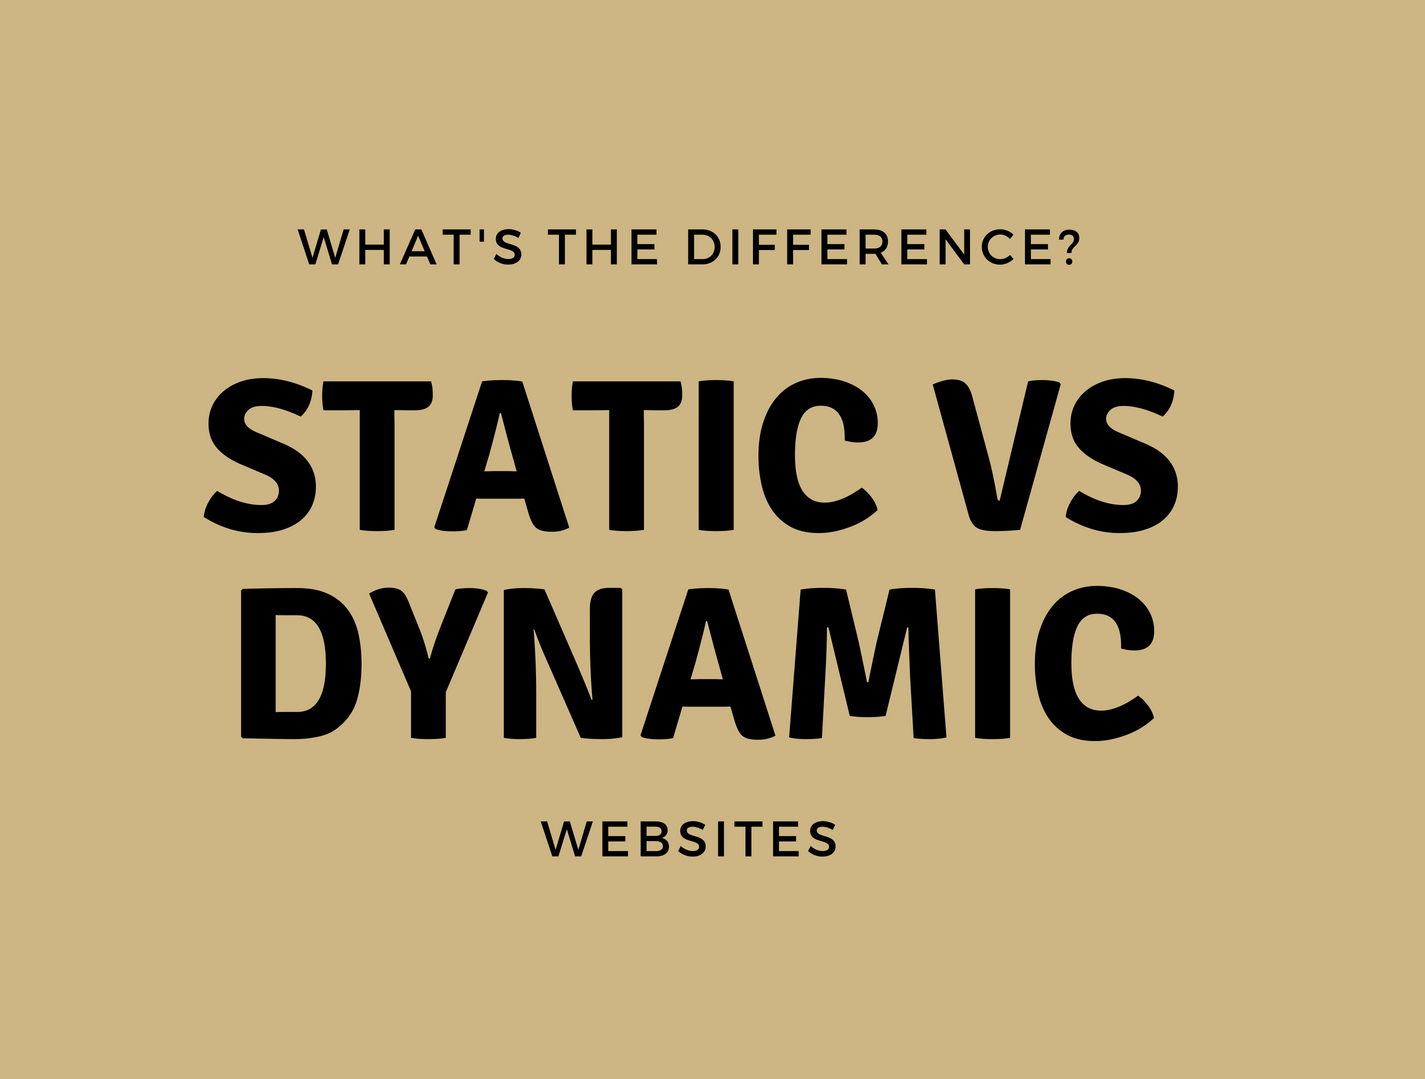 The Difference Between Static and Dynamic Websites